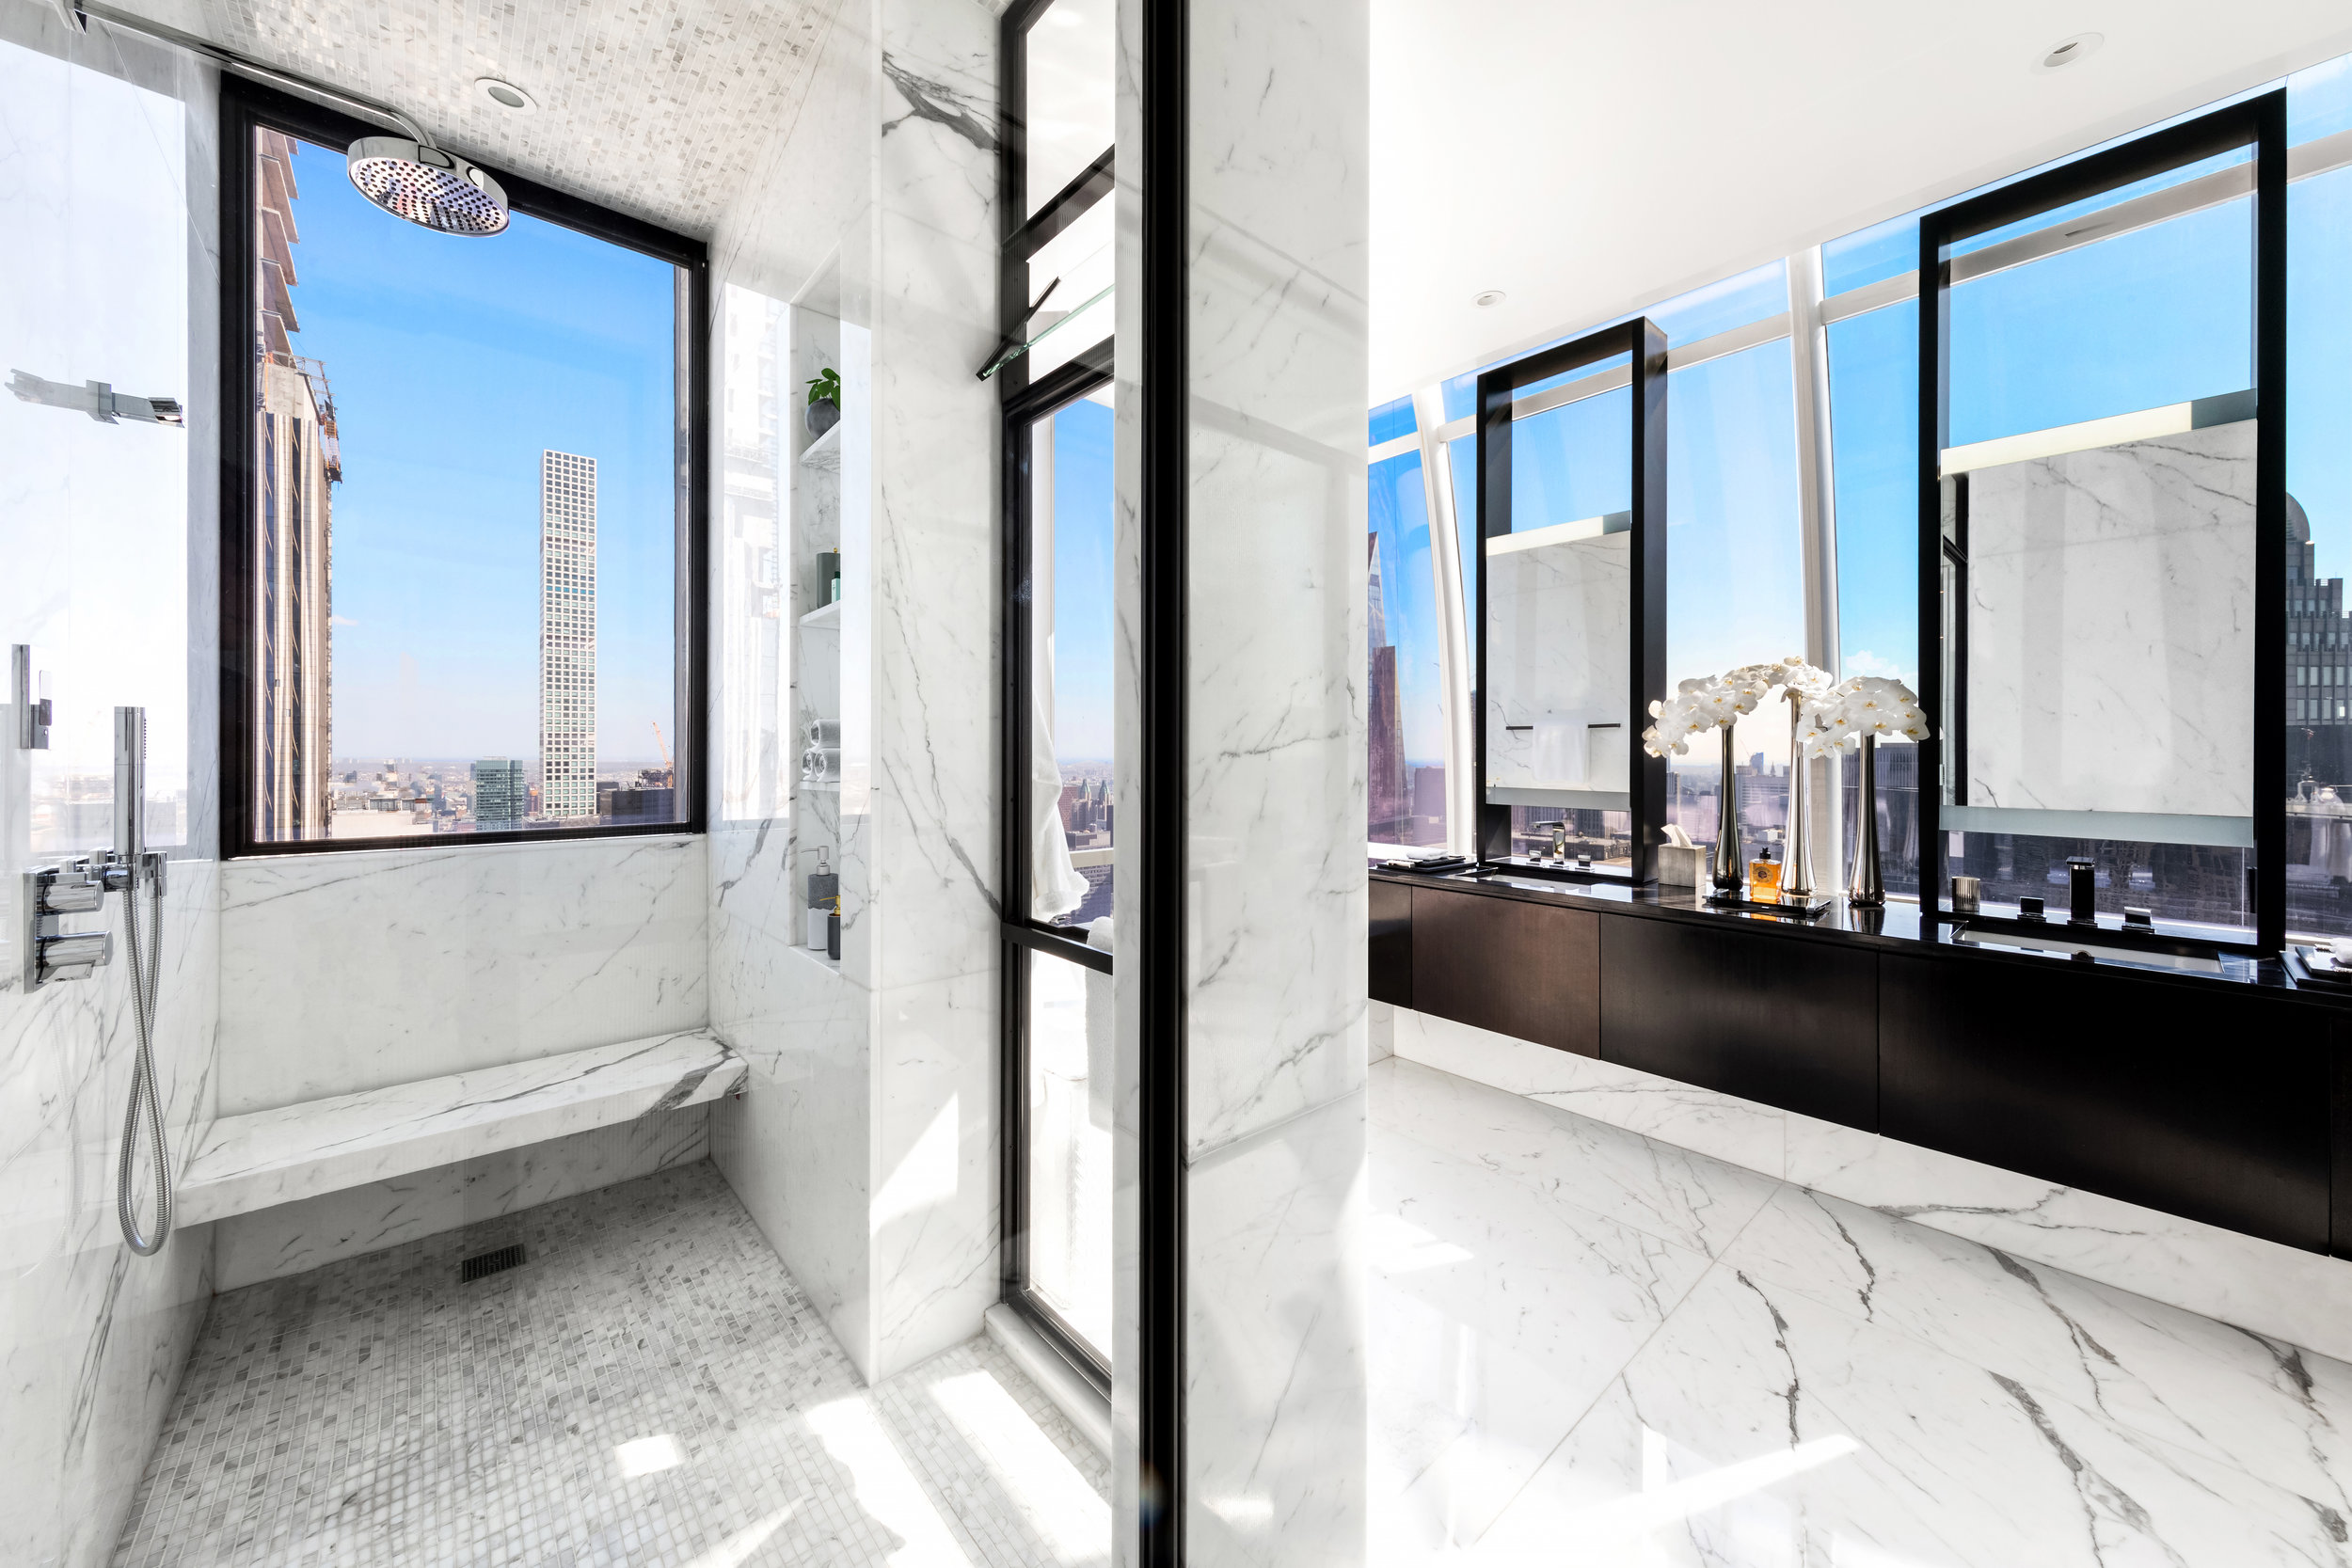 One57157West57thSt67B-CentralParkSouthNewYork_Anthony_Barillo_DouglasElliman_Photography_76925189_high_res.jpg